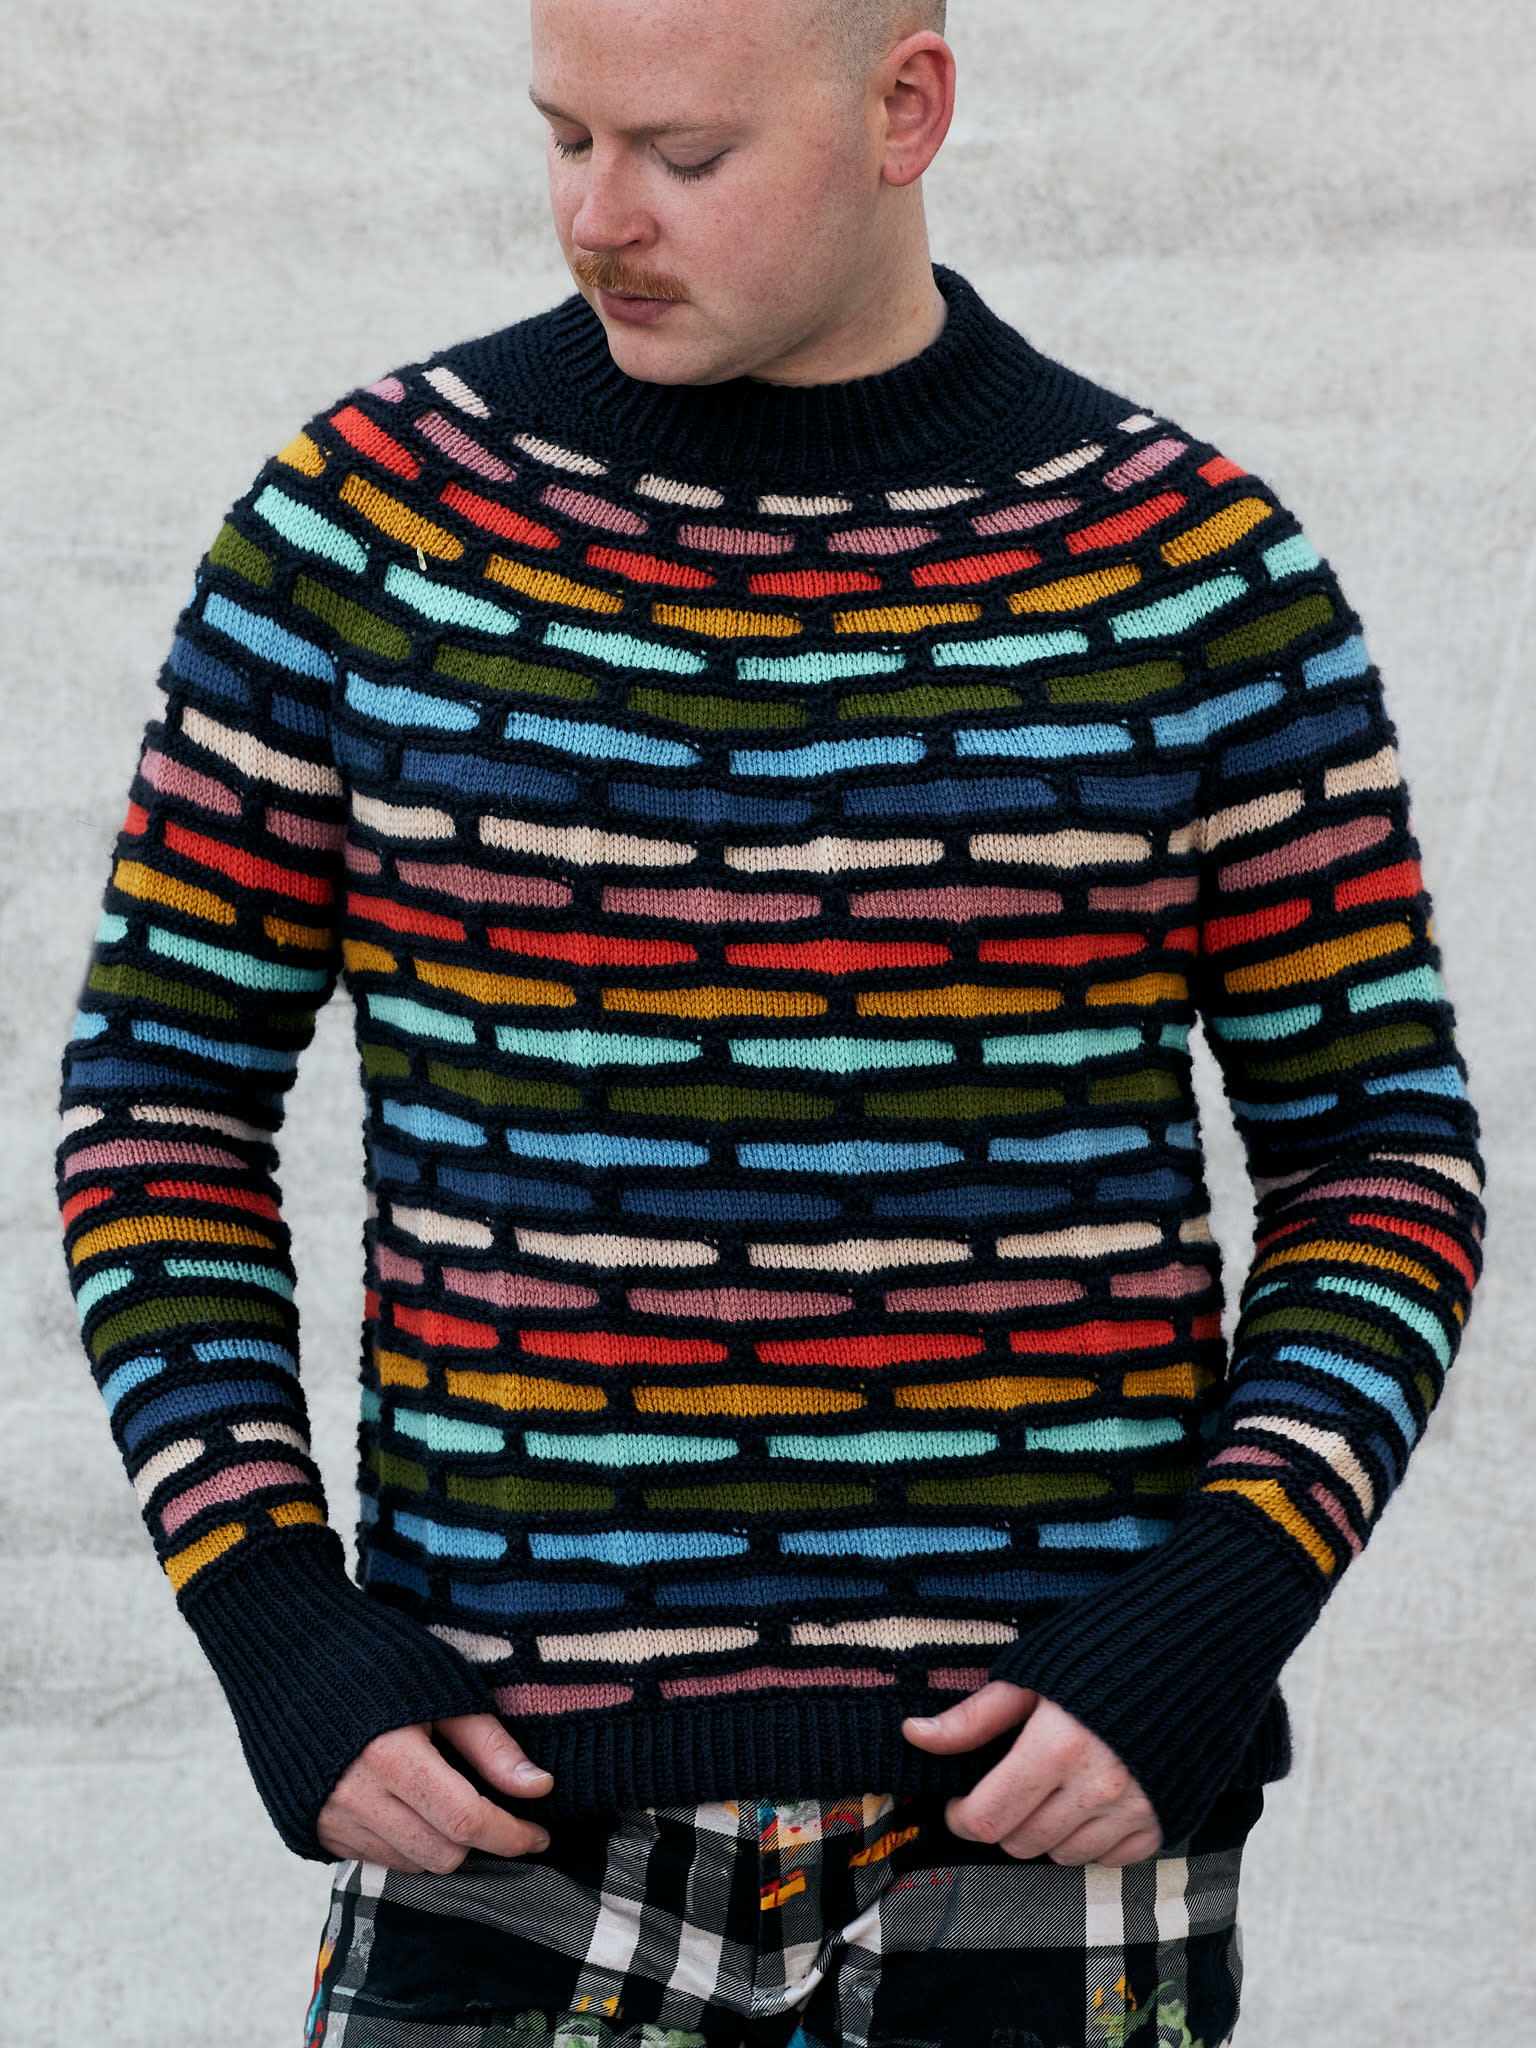 Westknits WK PAINTING BRICKS SWEATER CONTRAST COLOUR - KIT 5